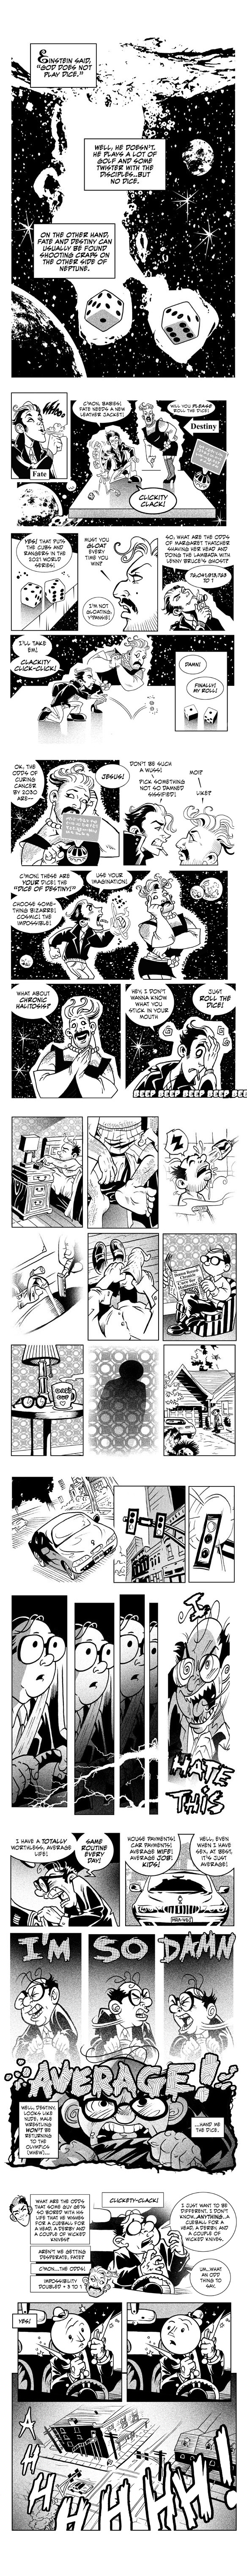 new_mini_comic_mr_average_by_sonion